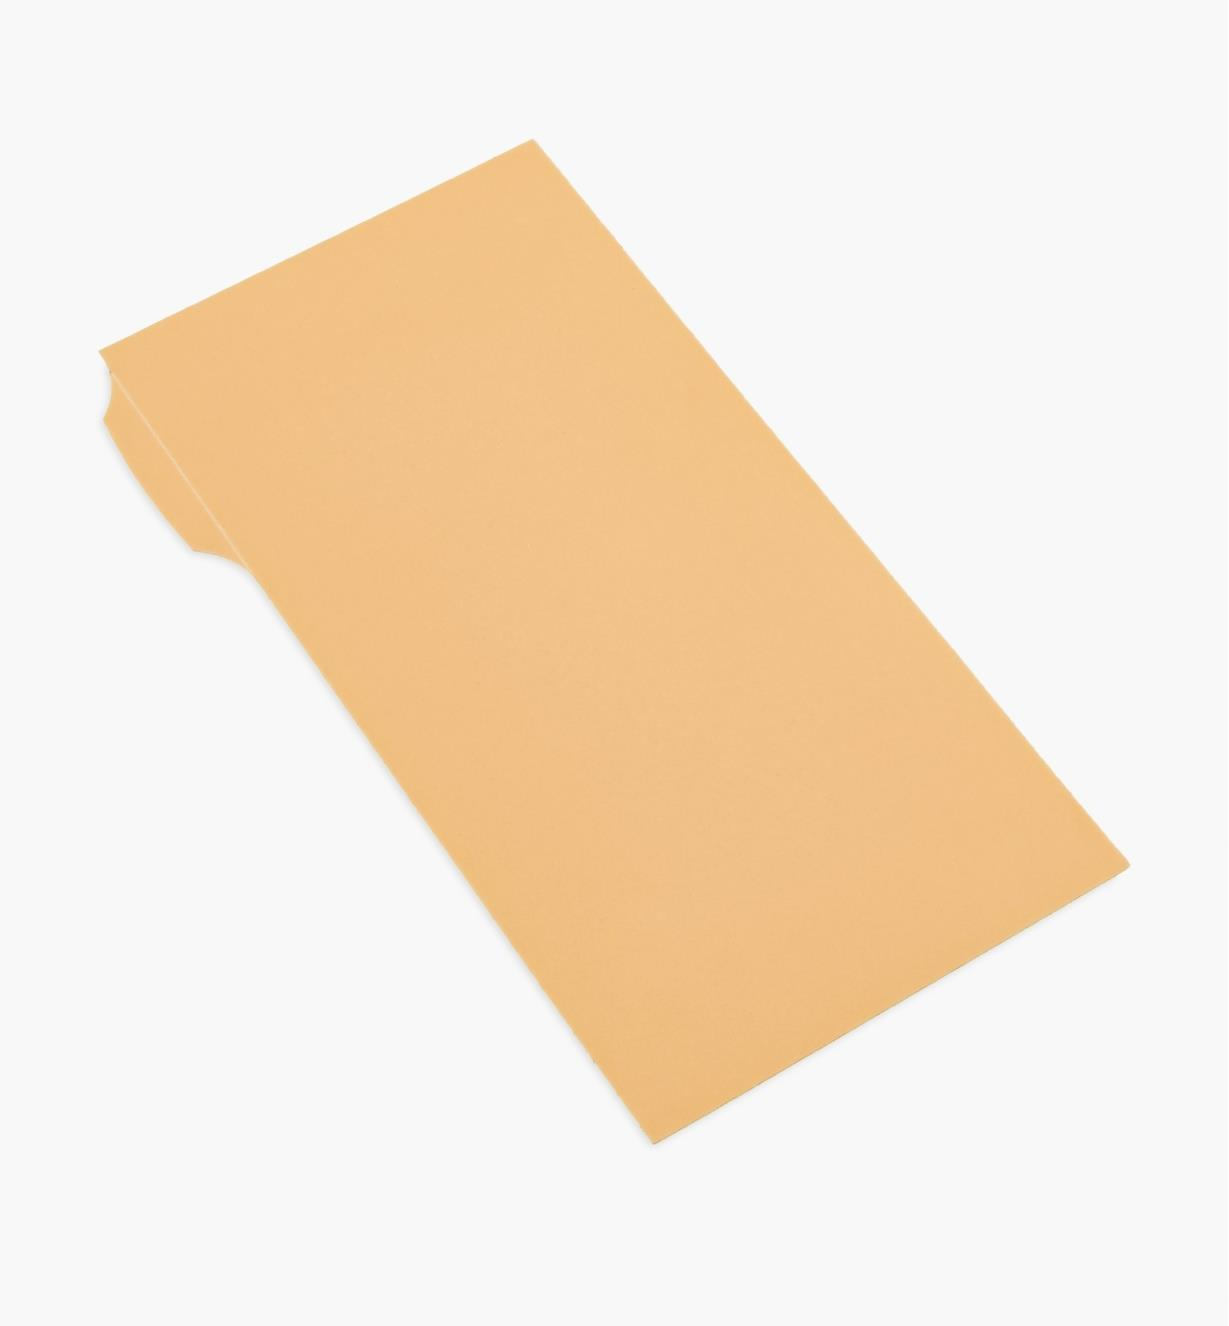 "54K9608 - 15µ PSA Diamond Film, 3"" x 6"" (orange)"